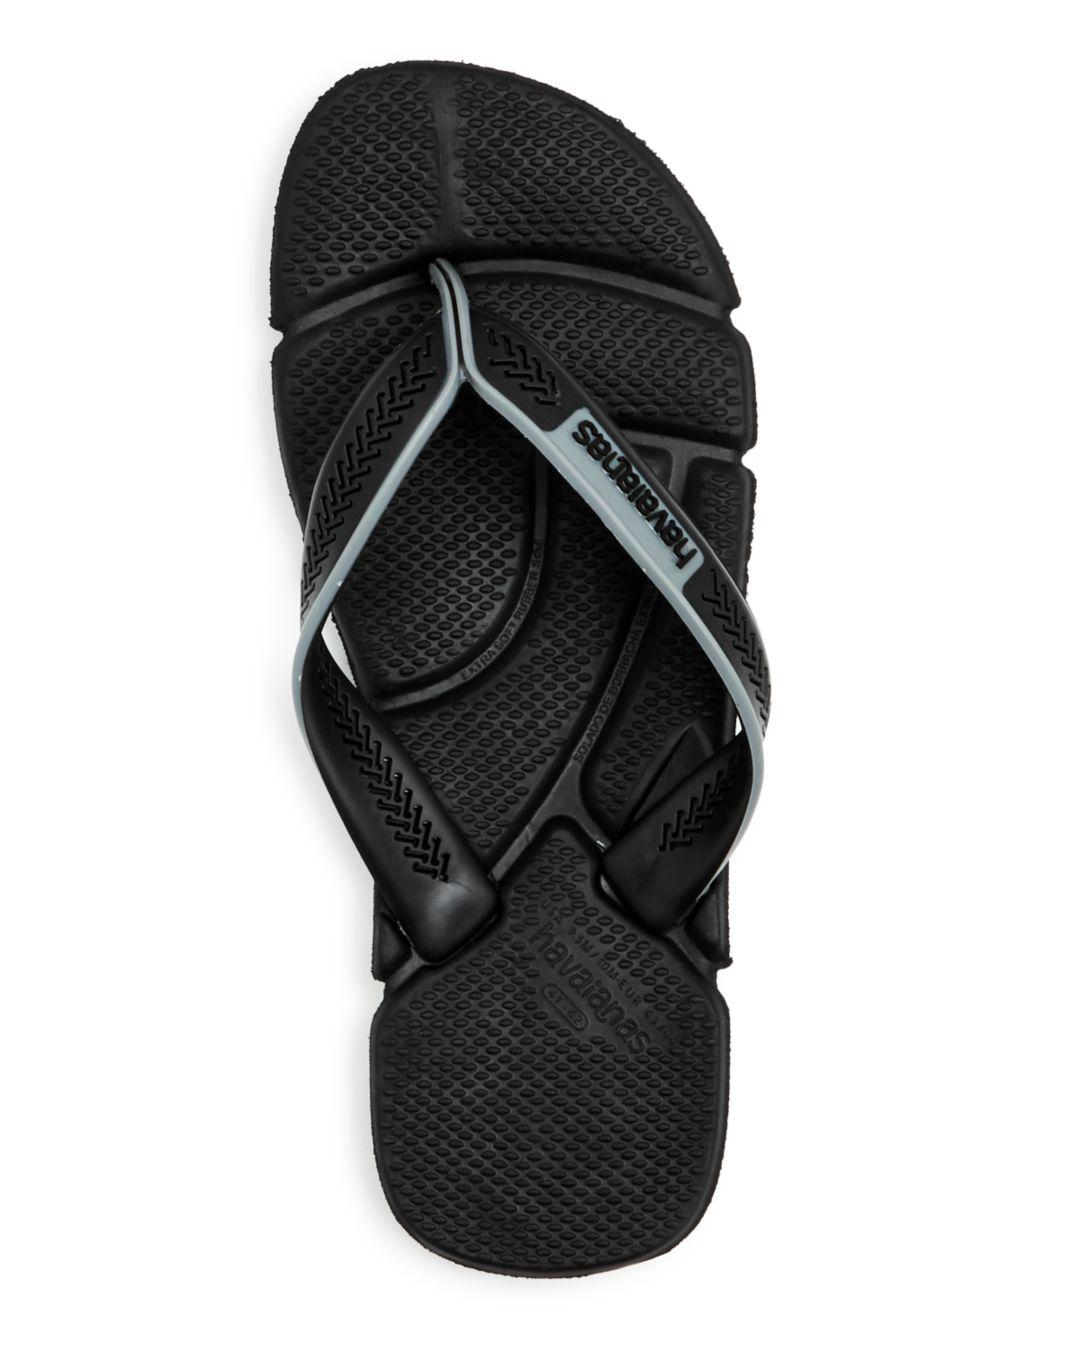 6e2d4d6c8d48d9 Lyst - Havaianas Men s Power Flip-flops in Black for Men